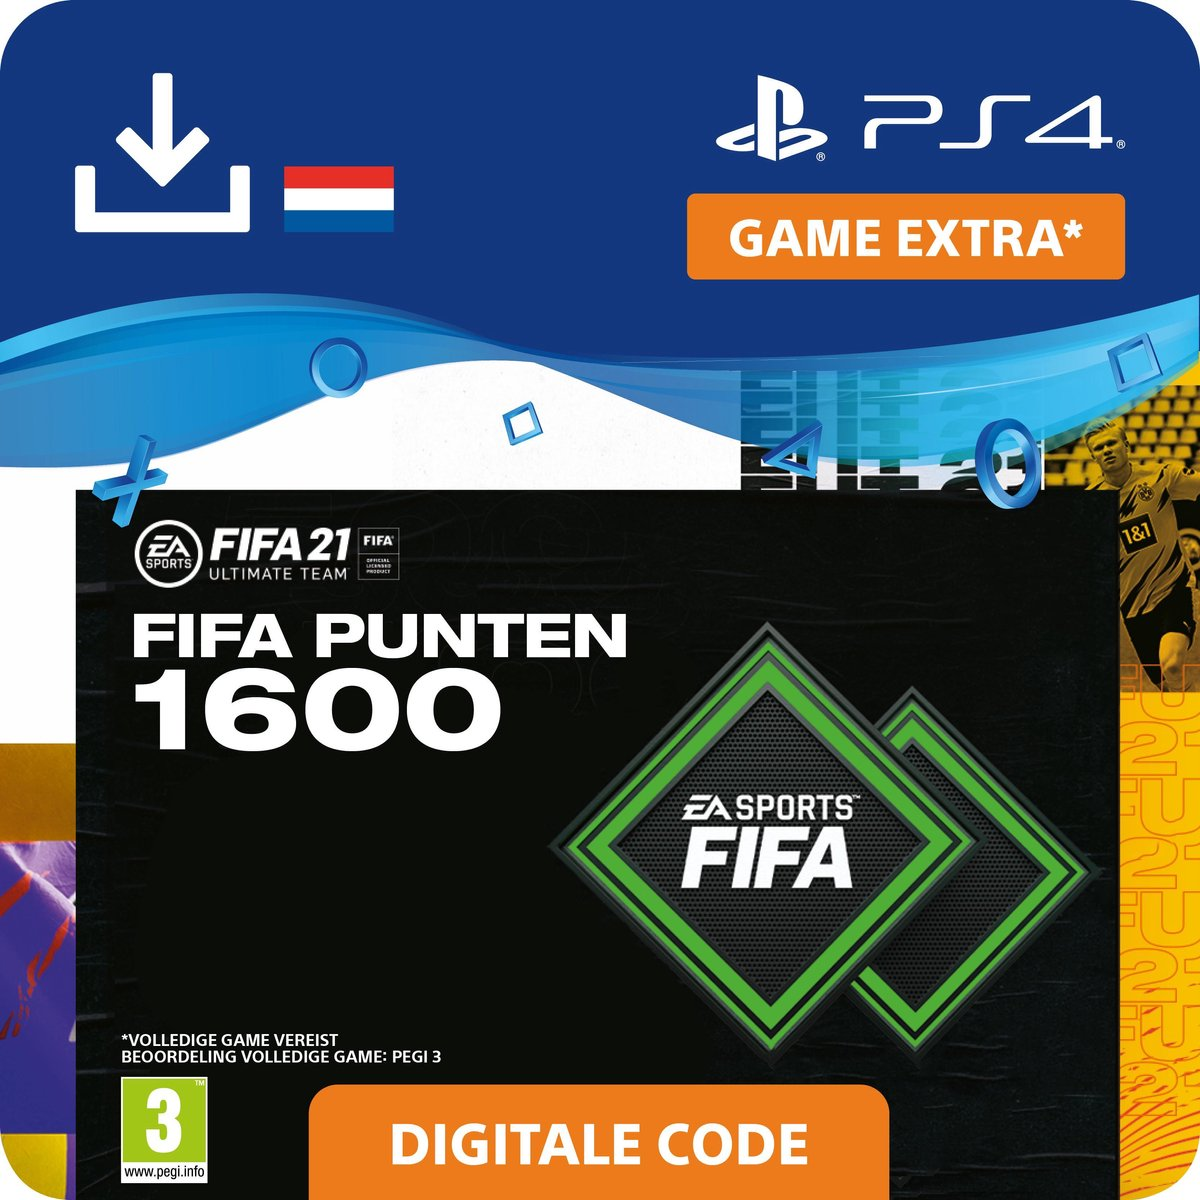 1.600 FUT Punten - FIFA 21 Ultimate Team - In-Game tegoed   PS4/PS5 Download - NL